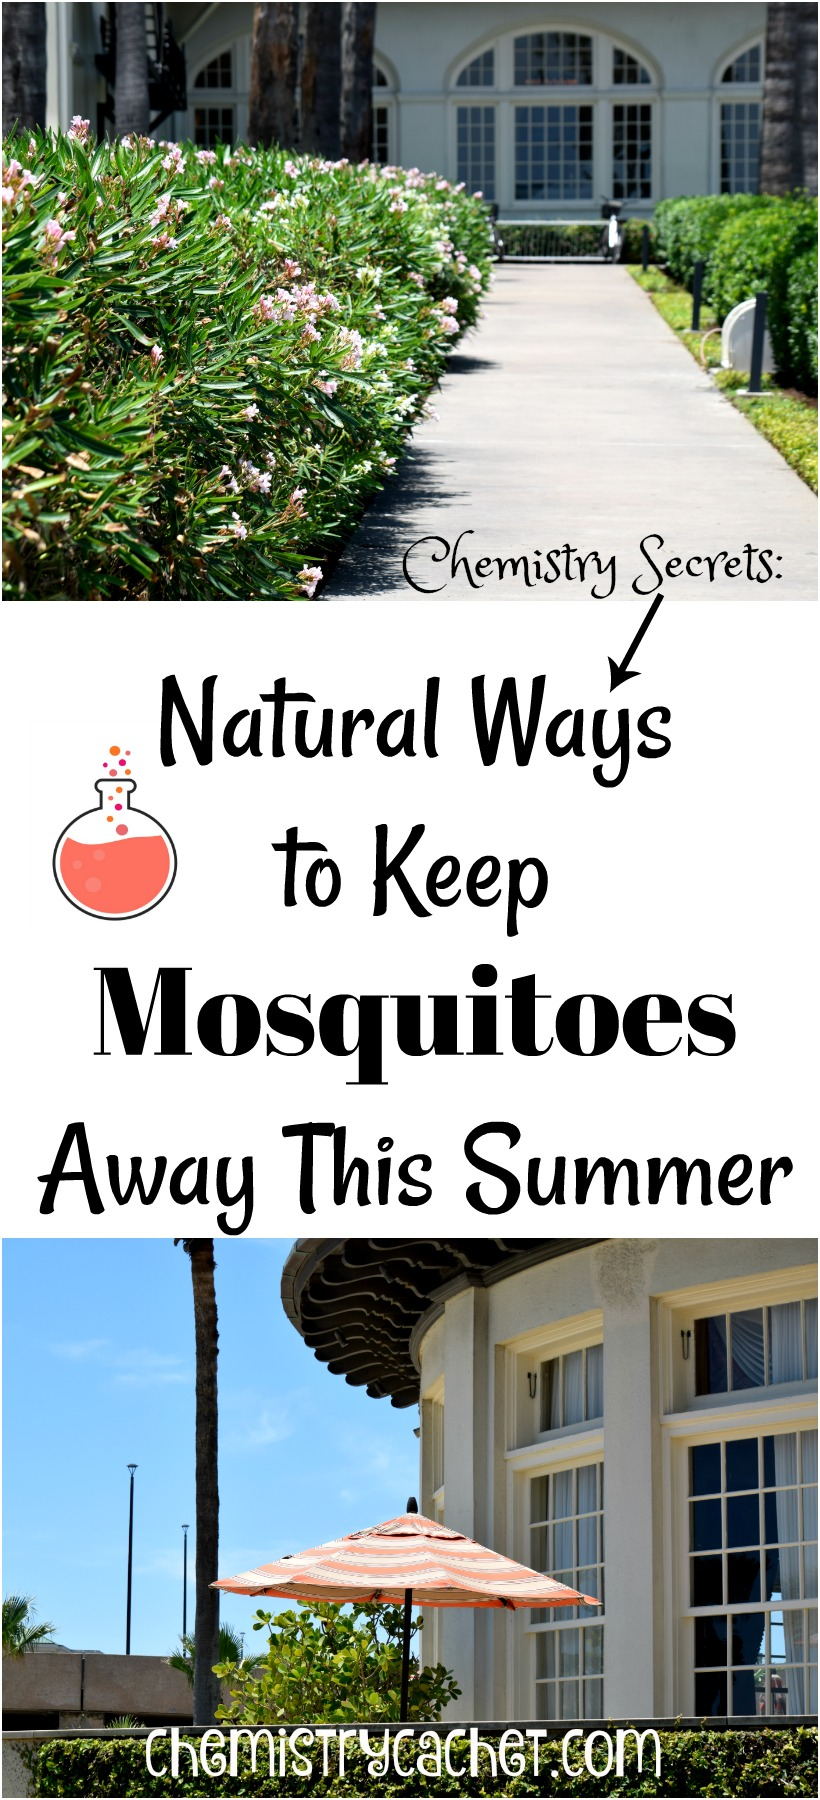 Chemistry Secrets Natural Ways To Keep Mosquitoes Away This Summer